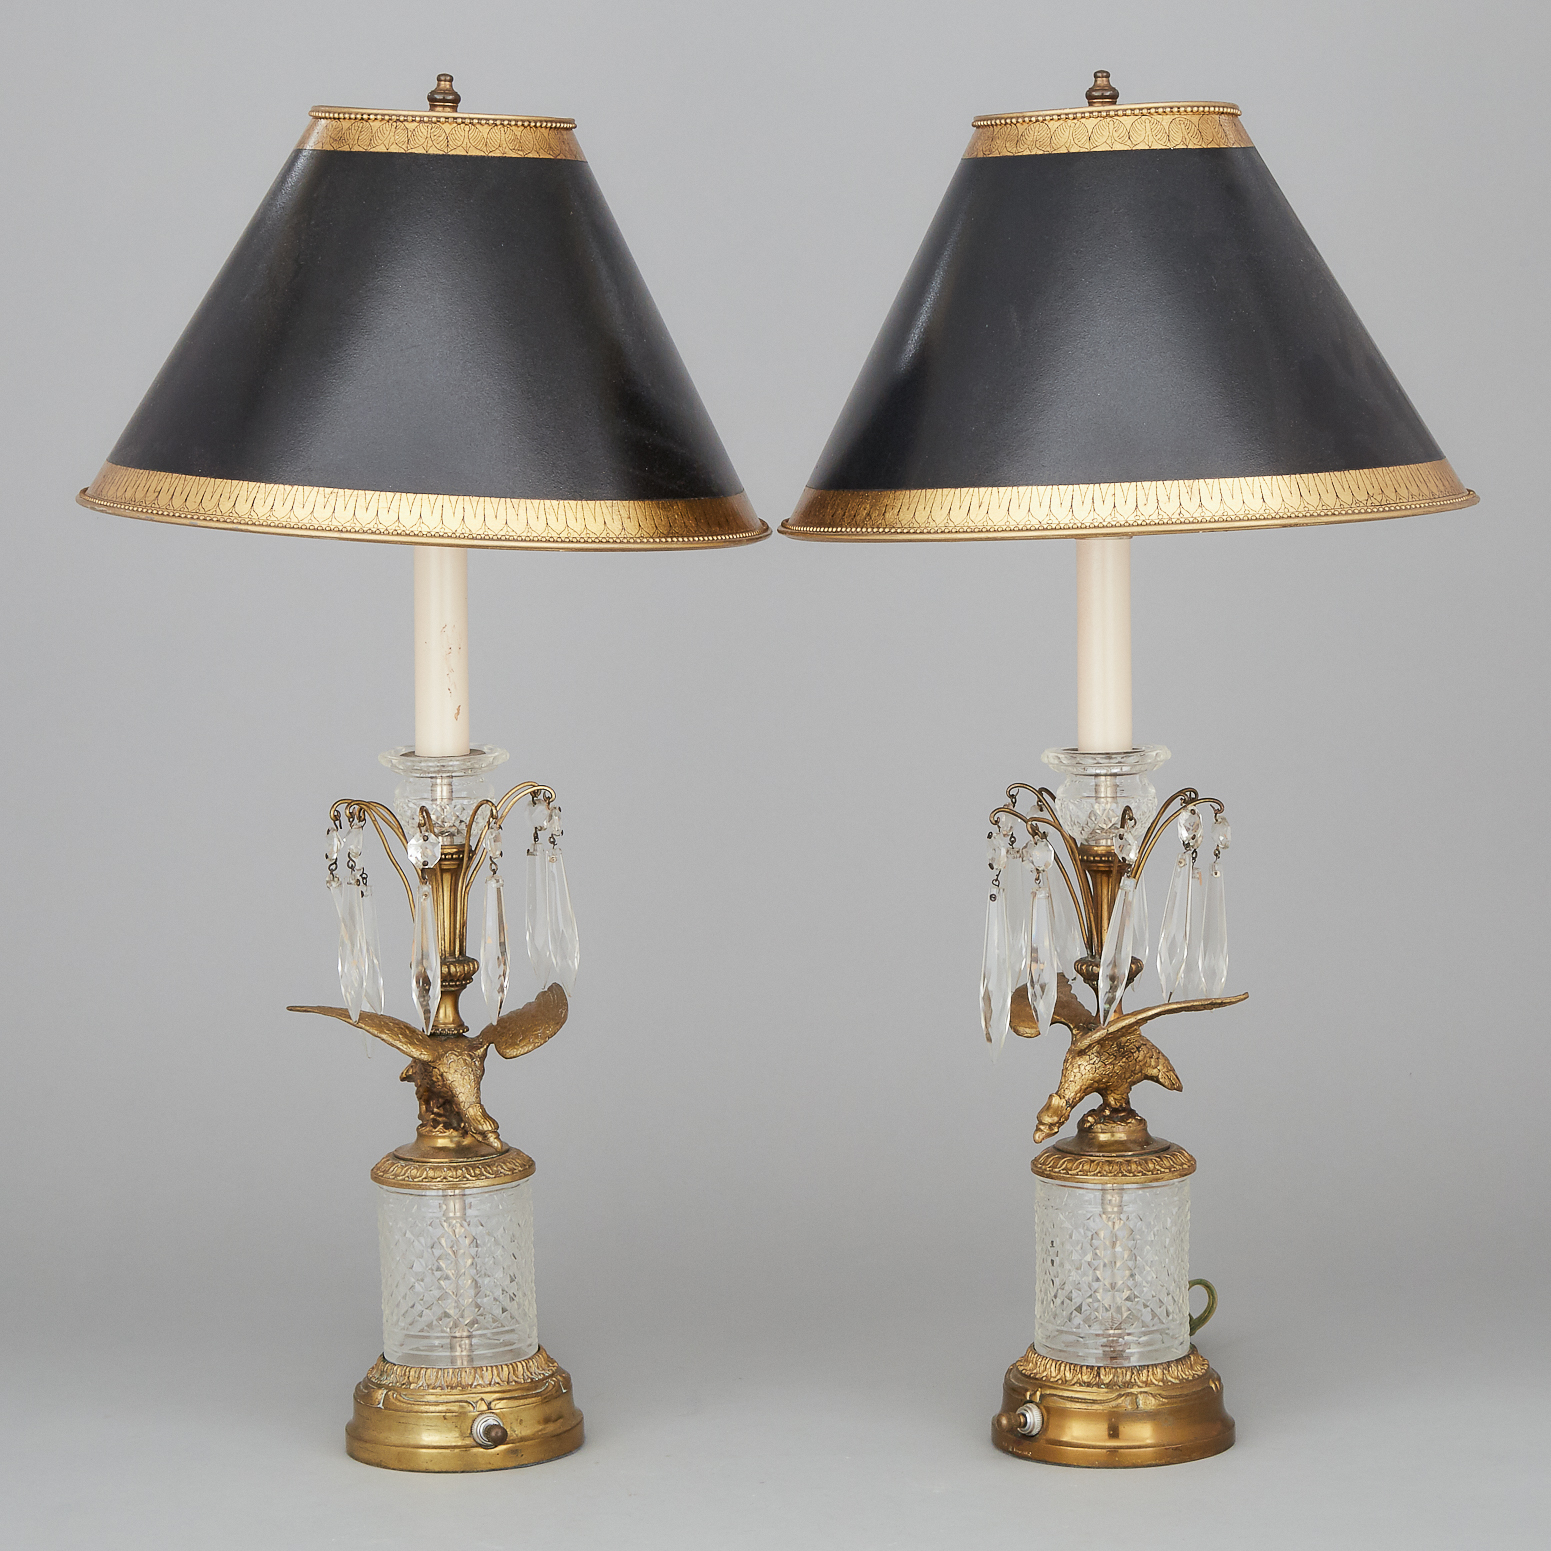 Pair of Austrian Cut Glass Mounted Ormolu Candlestick Lamps, mid 20th century